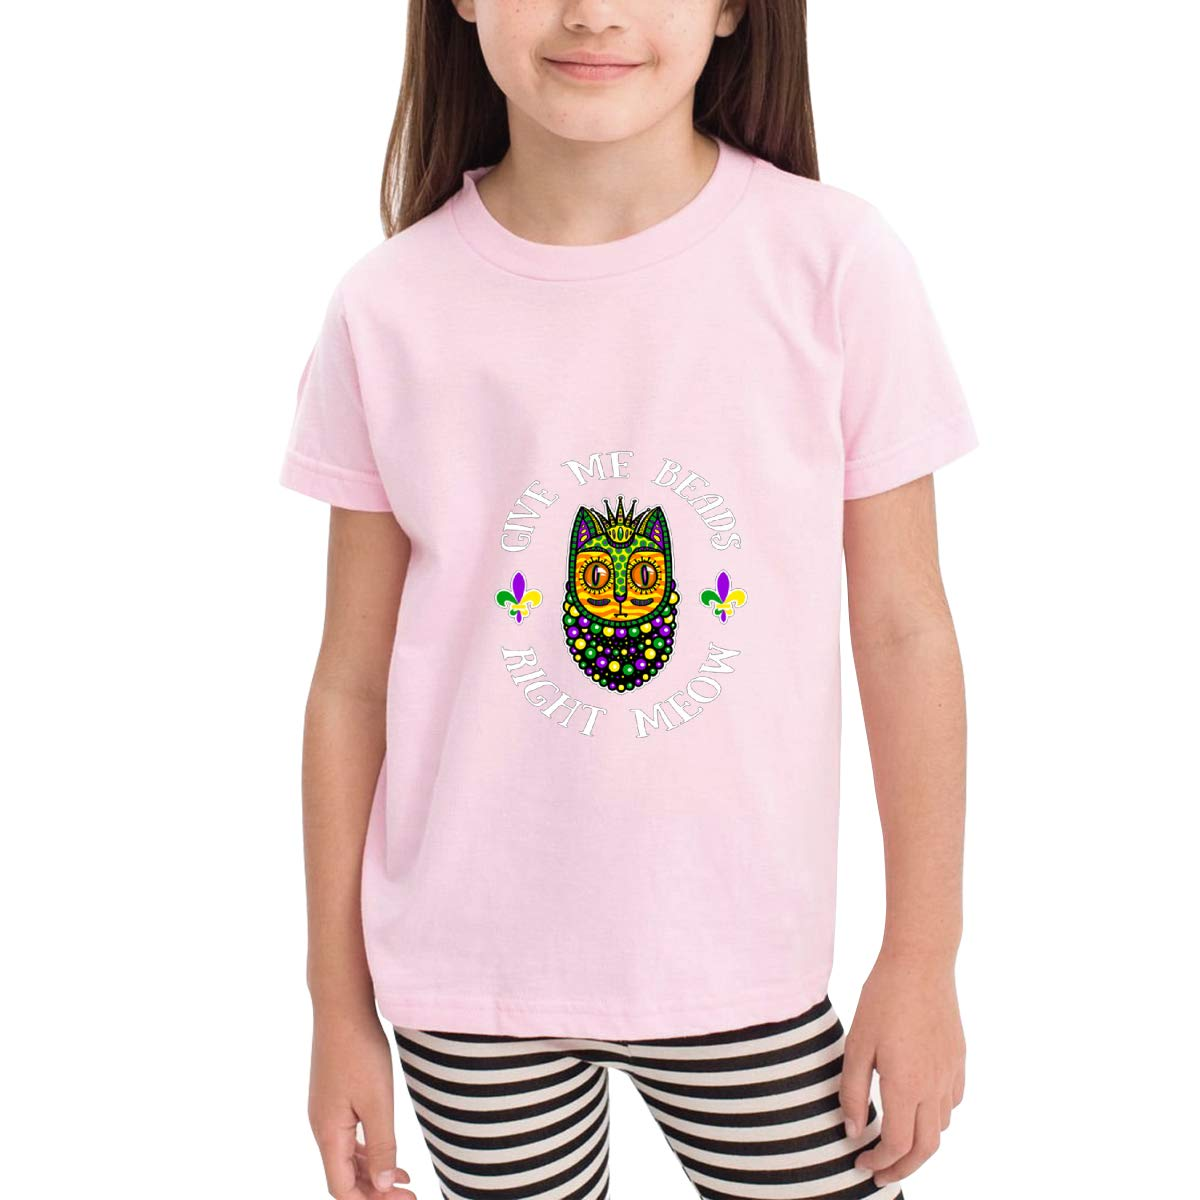 Onlybabycare Give Me Beads Right Meow 100/% Cotton Toddler Baby Boys Girls Kids Short Sleeve T Shirt Top Tee Clothes 2-6 T